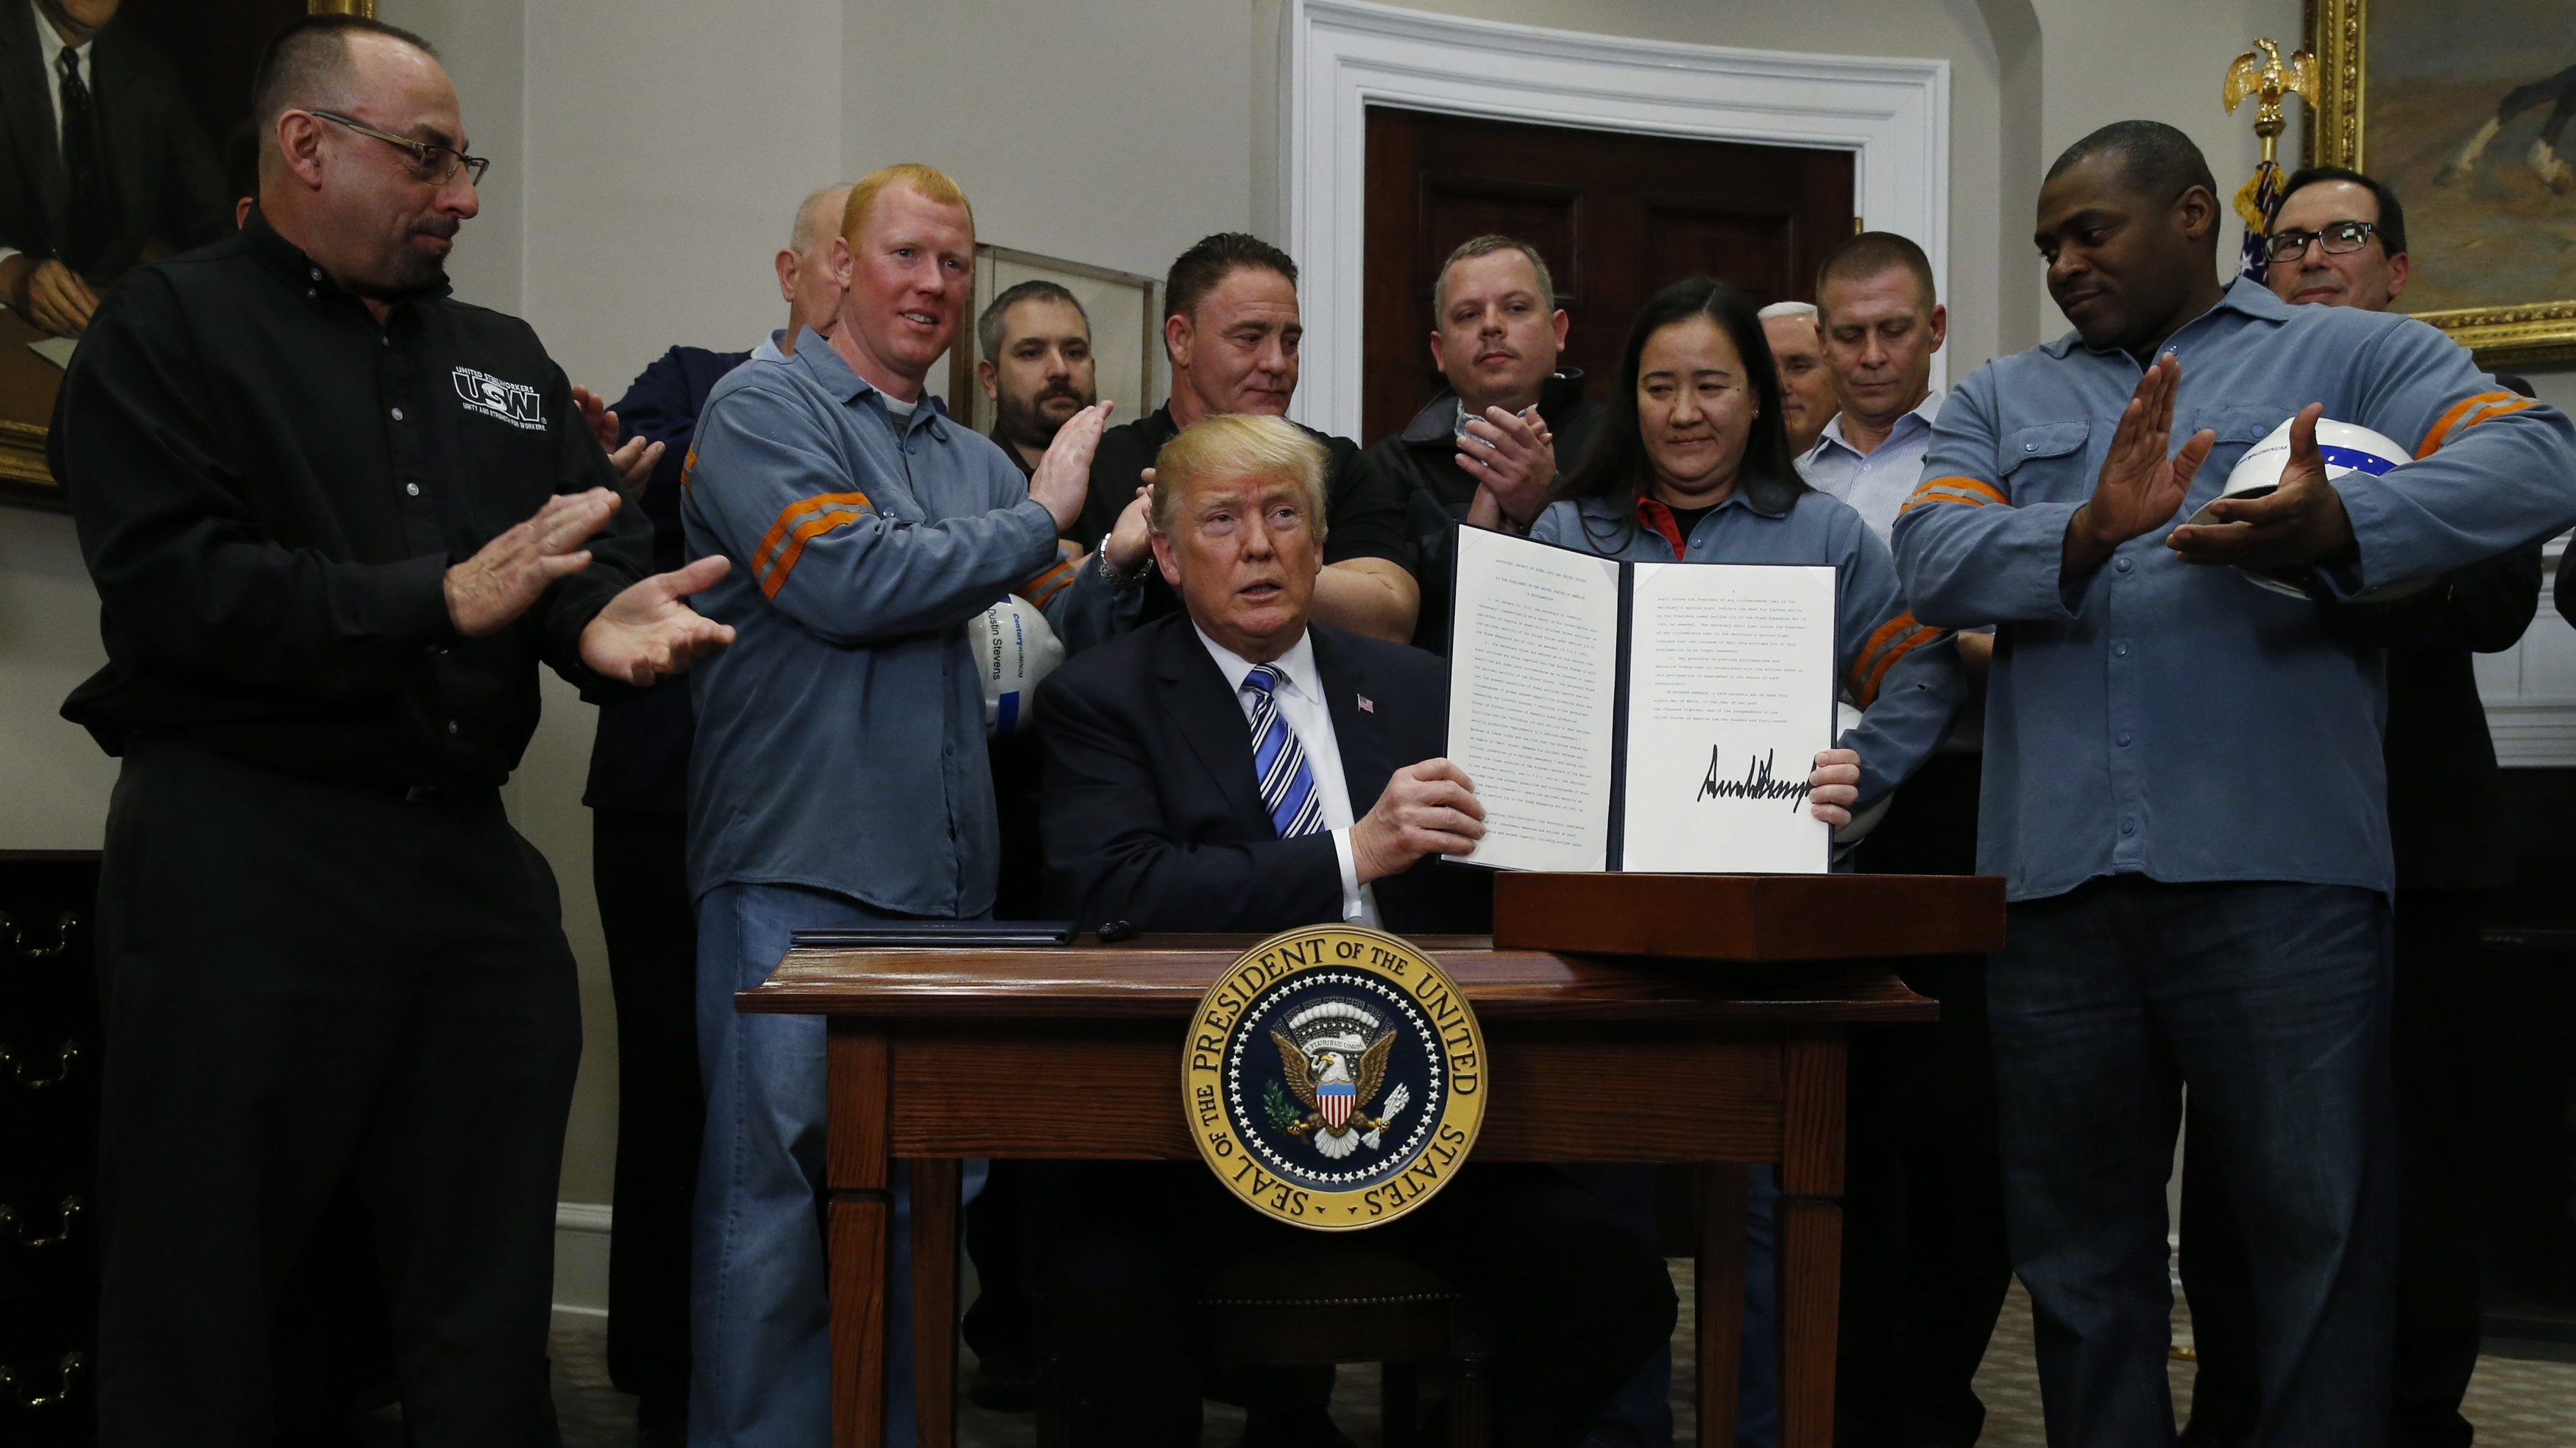 U.S. President Donald Trump is after signing a proclamation to establish tariffs on imports of steel and aluminum at the White House in Washington, U.S., March 8, 2018. REUTERS/Leah Millis - HP1EE381MUXAU